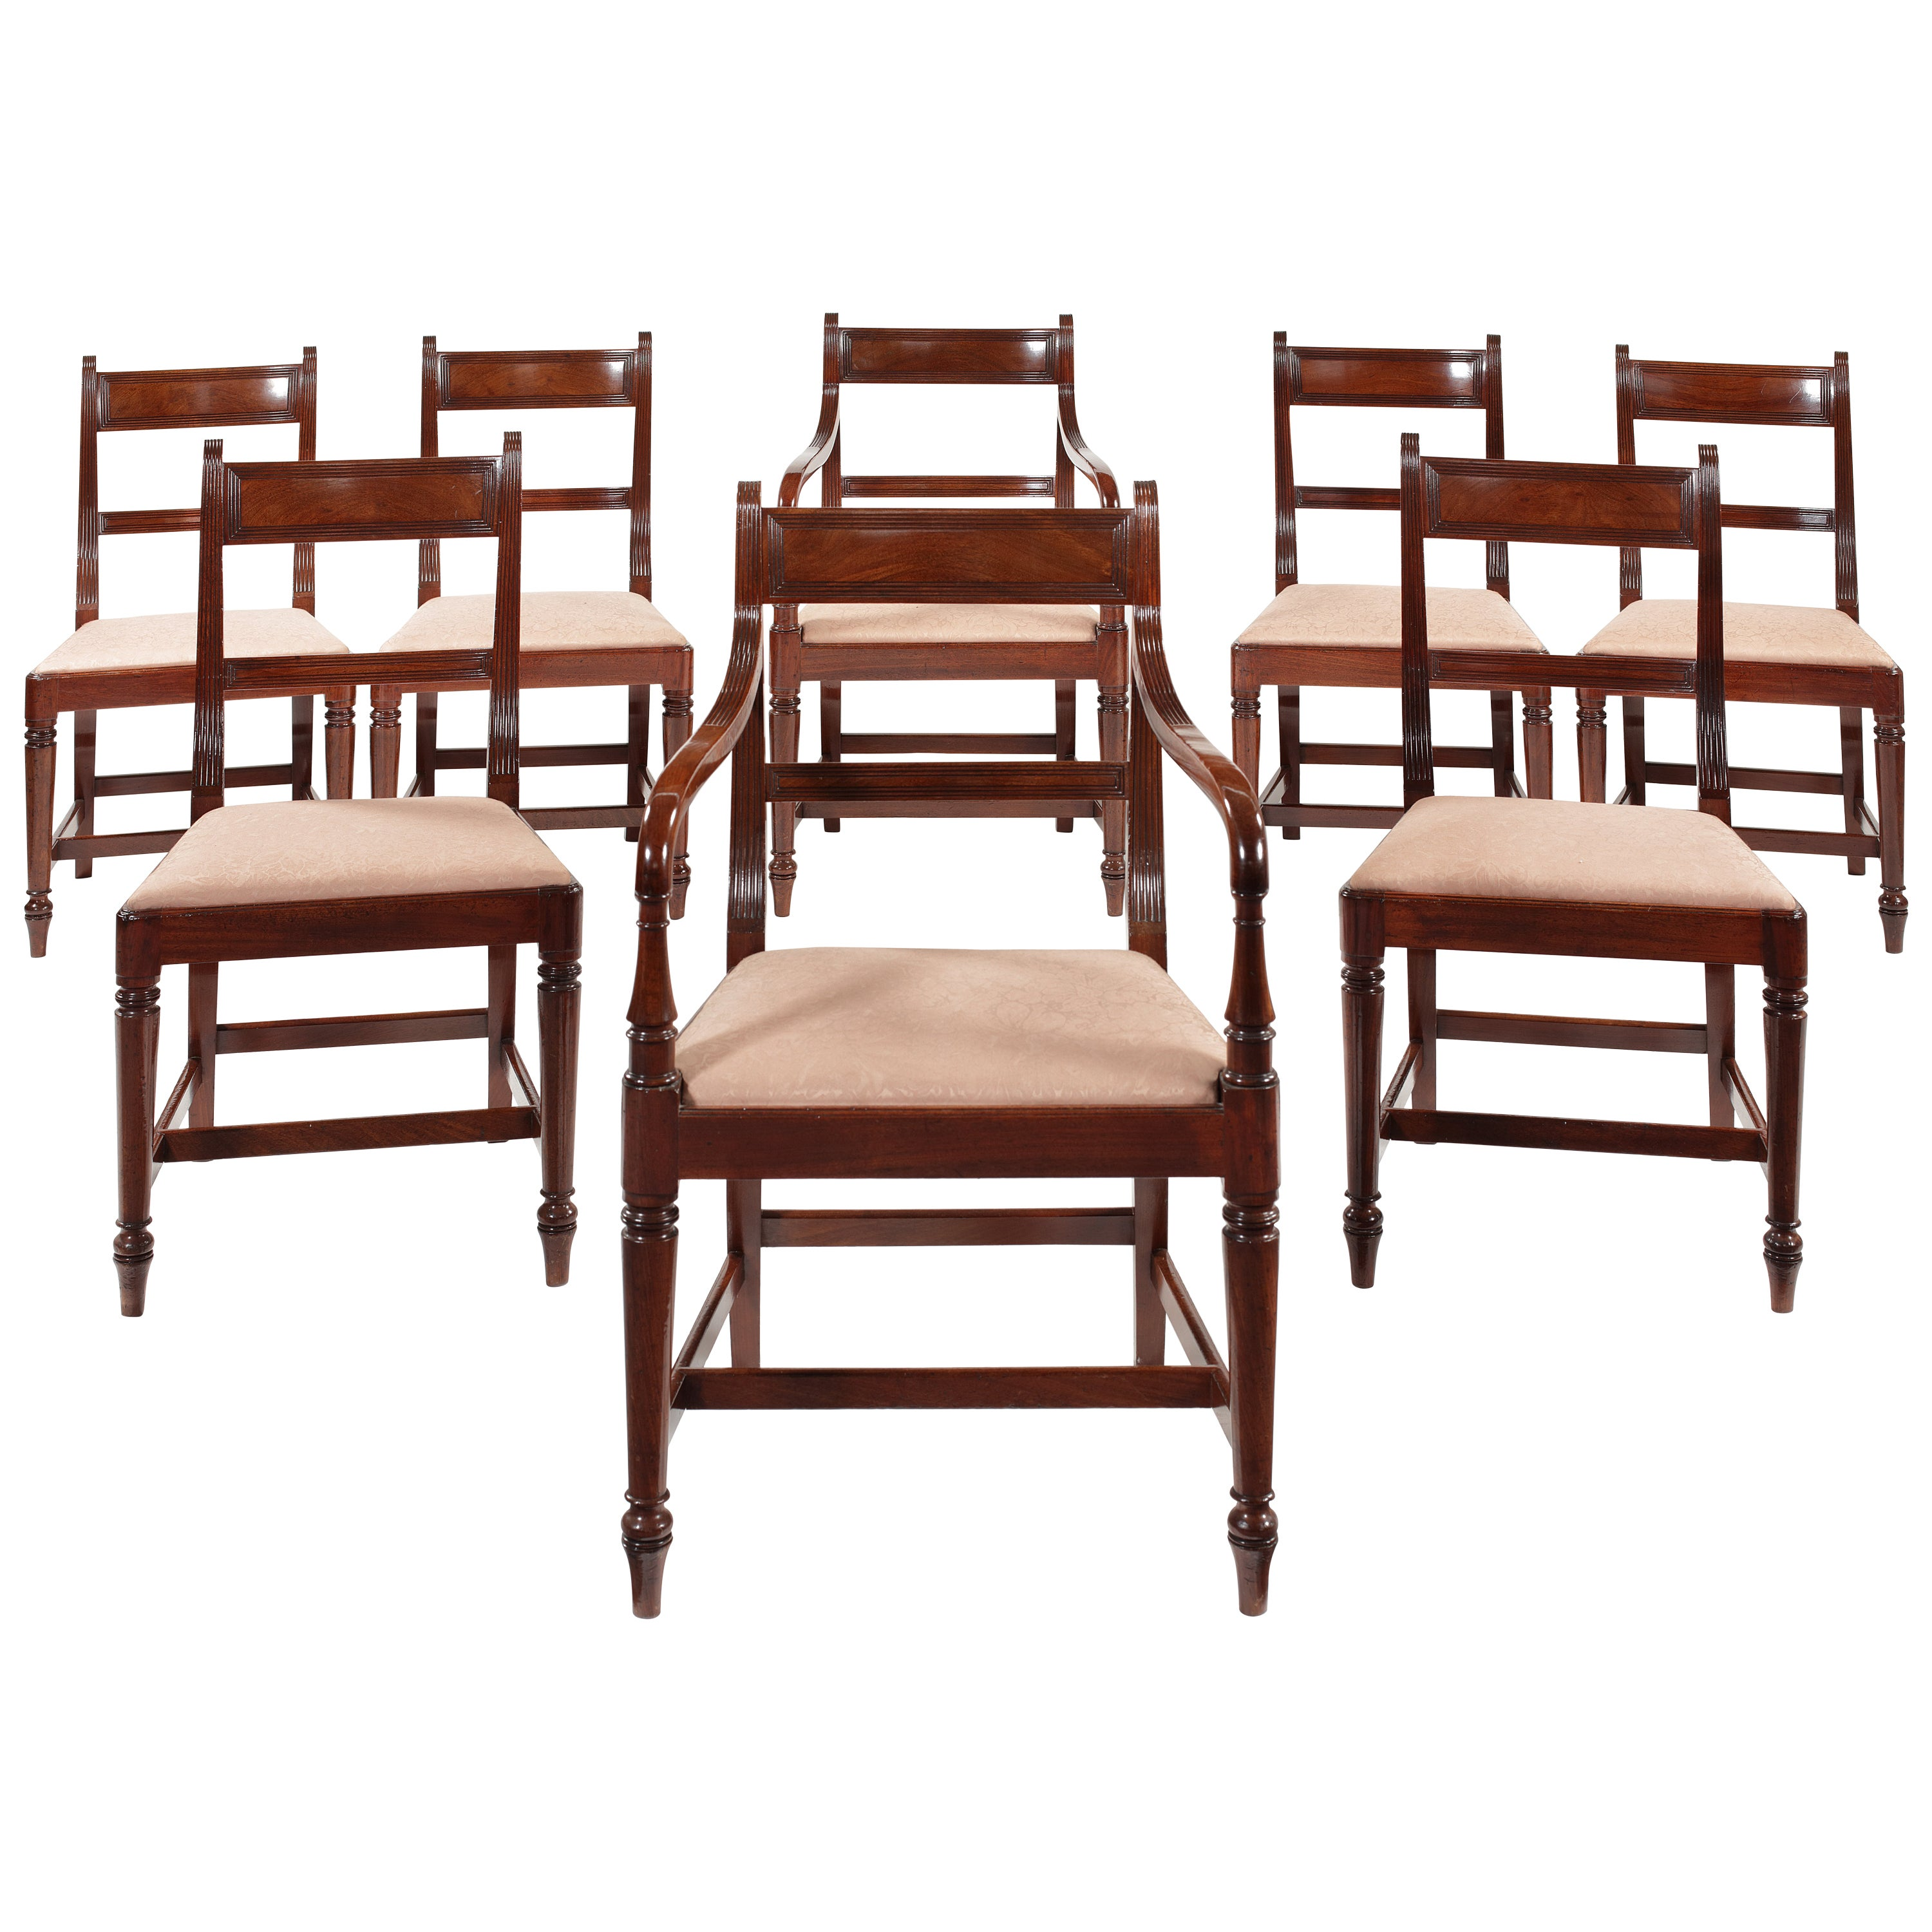 9190ca9d3f55 Set of Eight Regency Mahogany Dining Chairs at 1stdibs